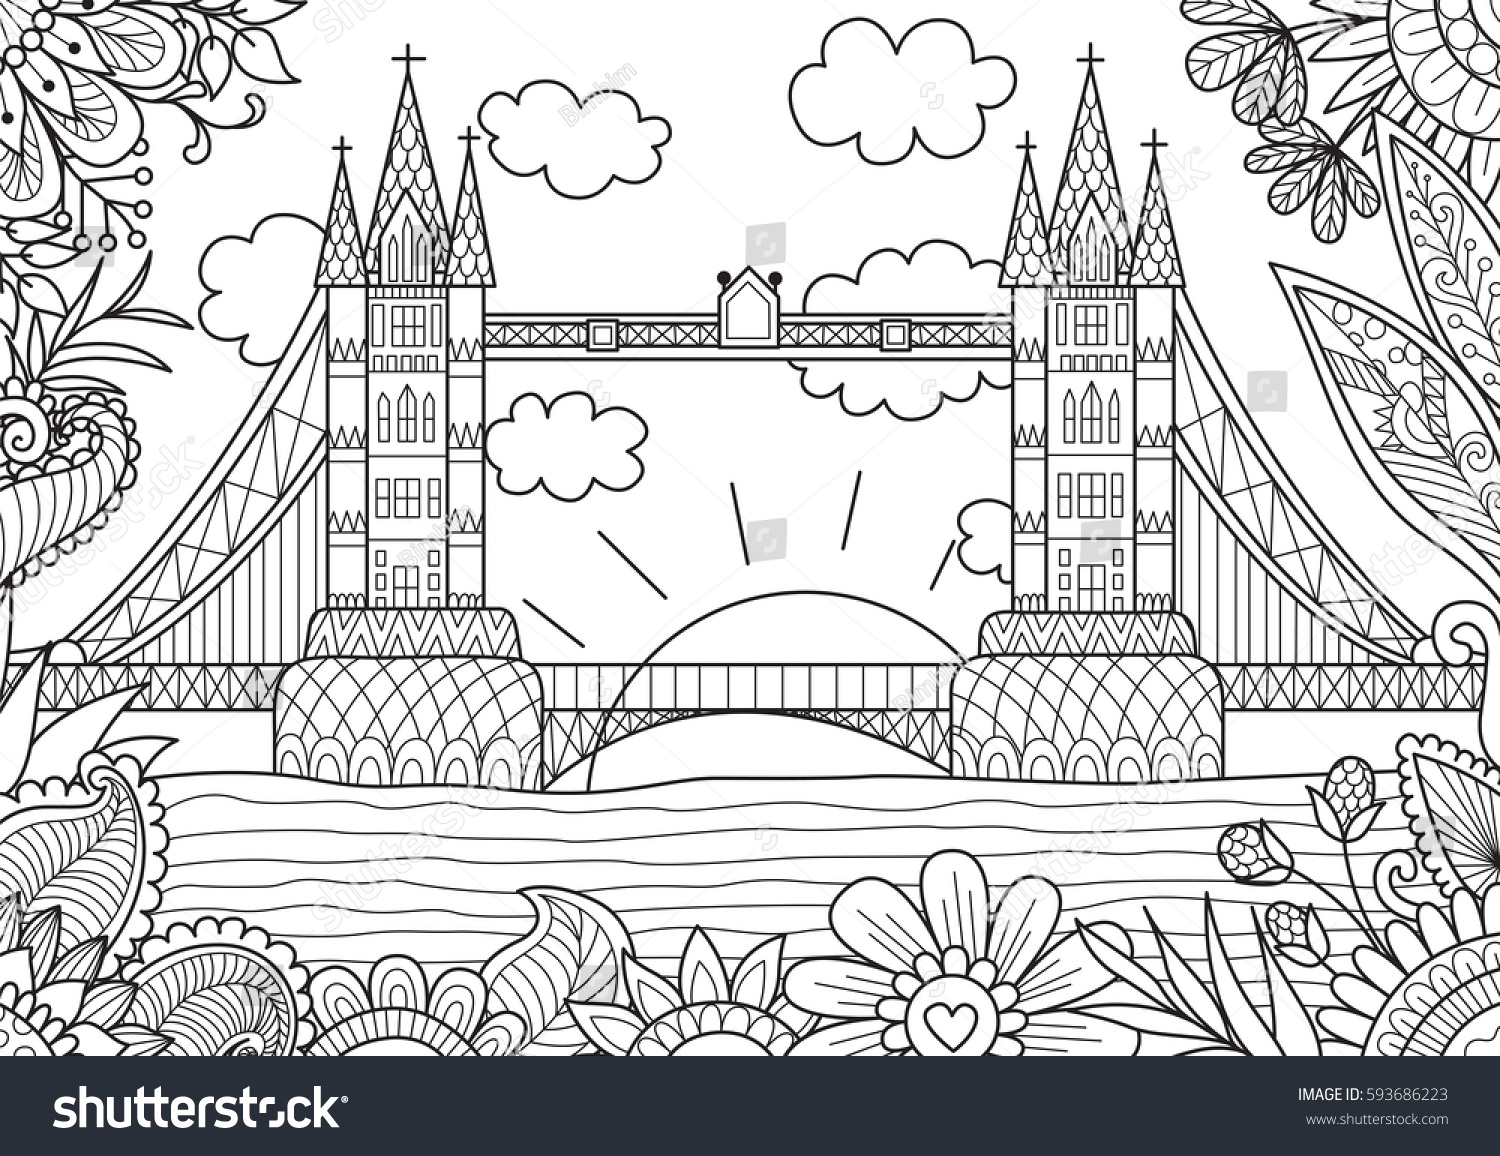 Spring In London Zendoodle Design For Adult Coloring Book Page Stock Vector